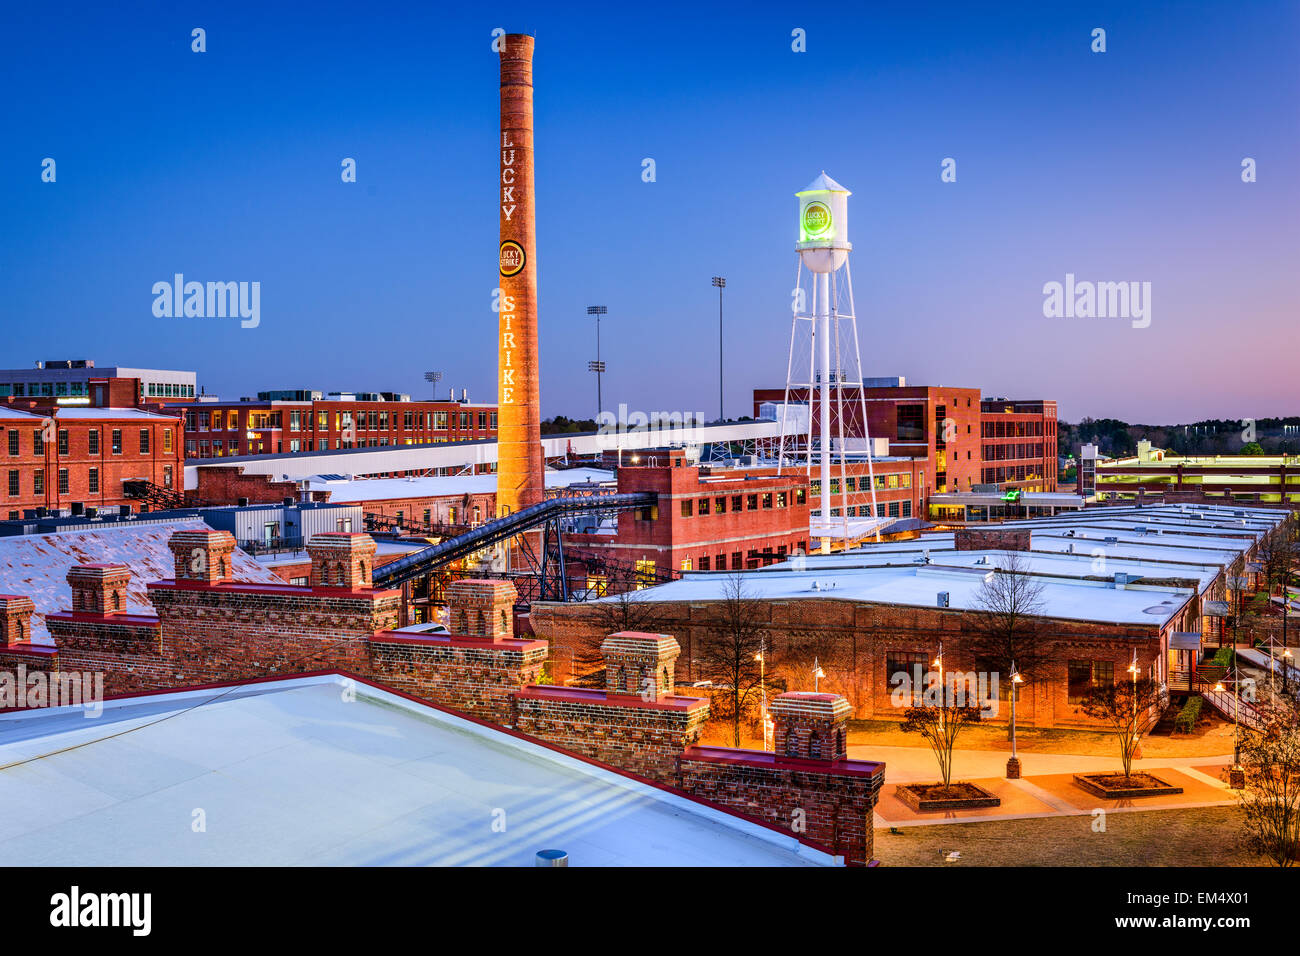 The American Tobacco Historic District in Durham, North Carolina, USA. - Stock Image